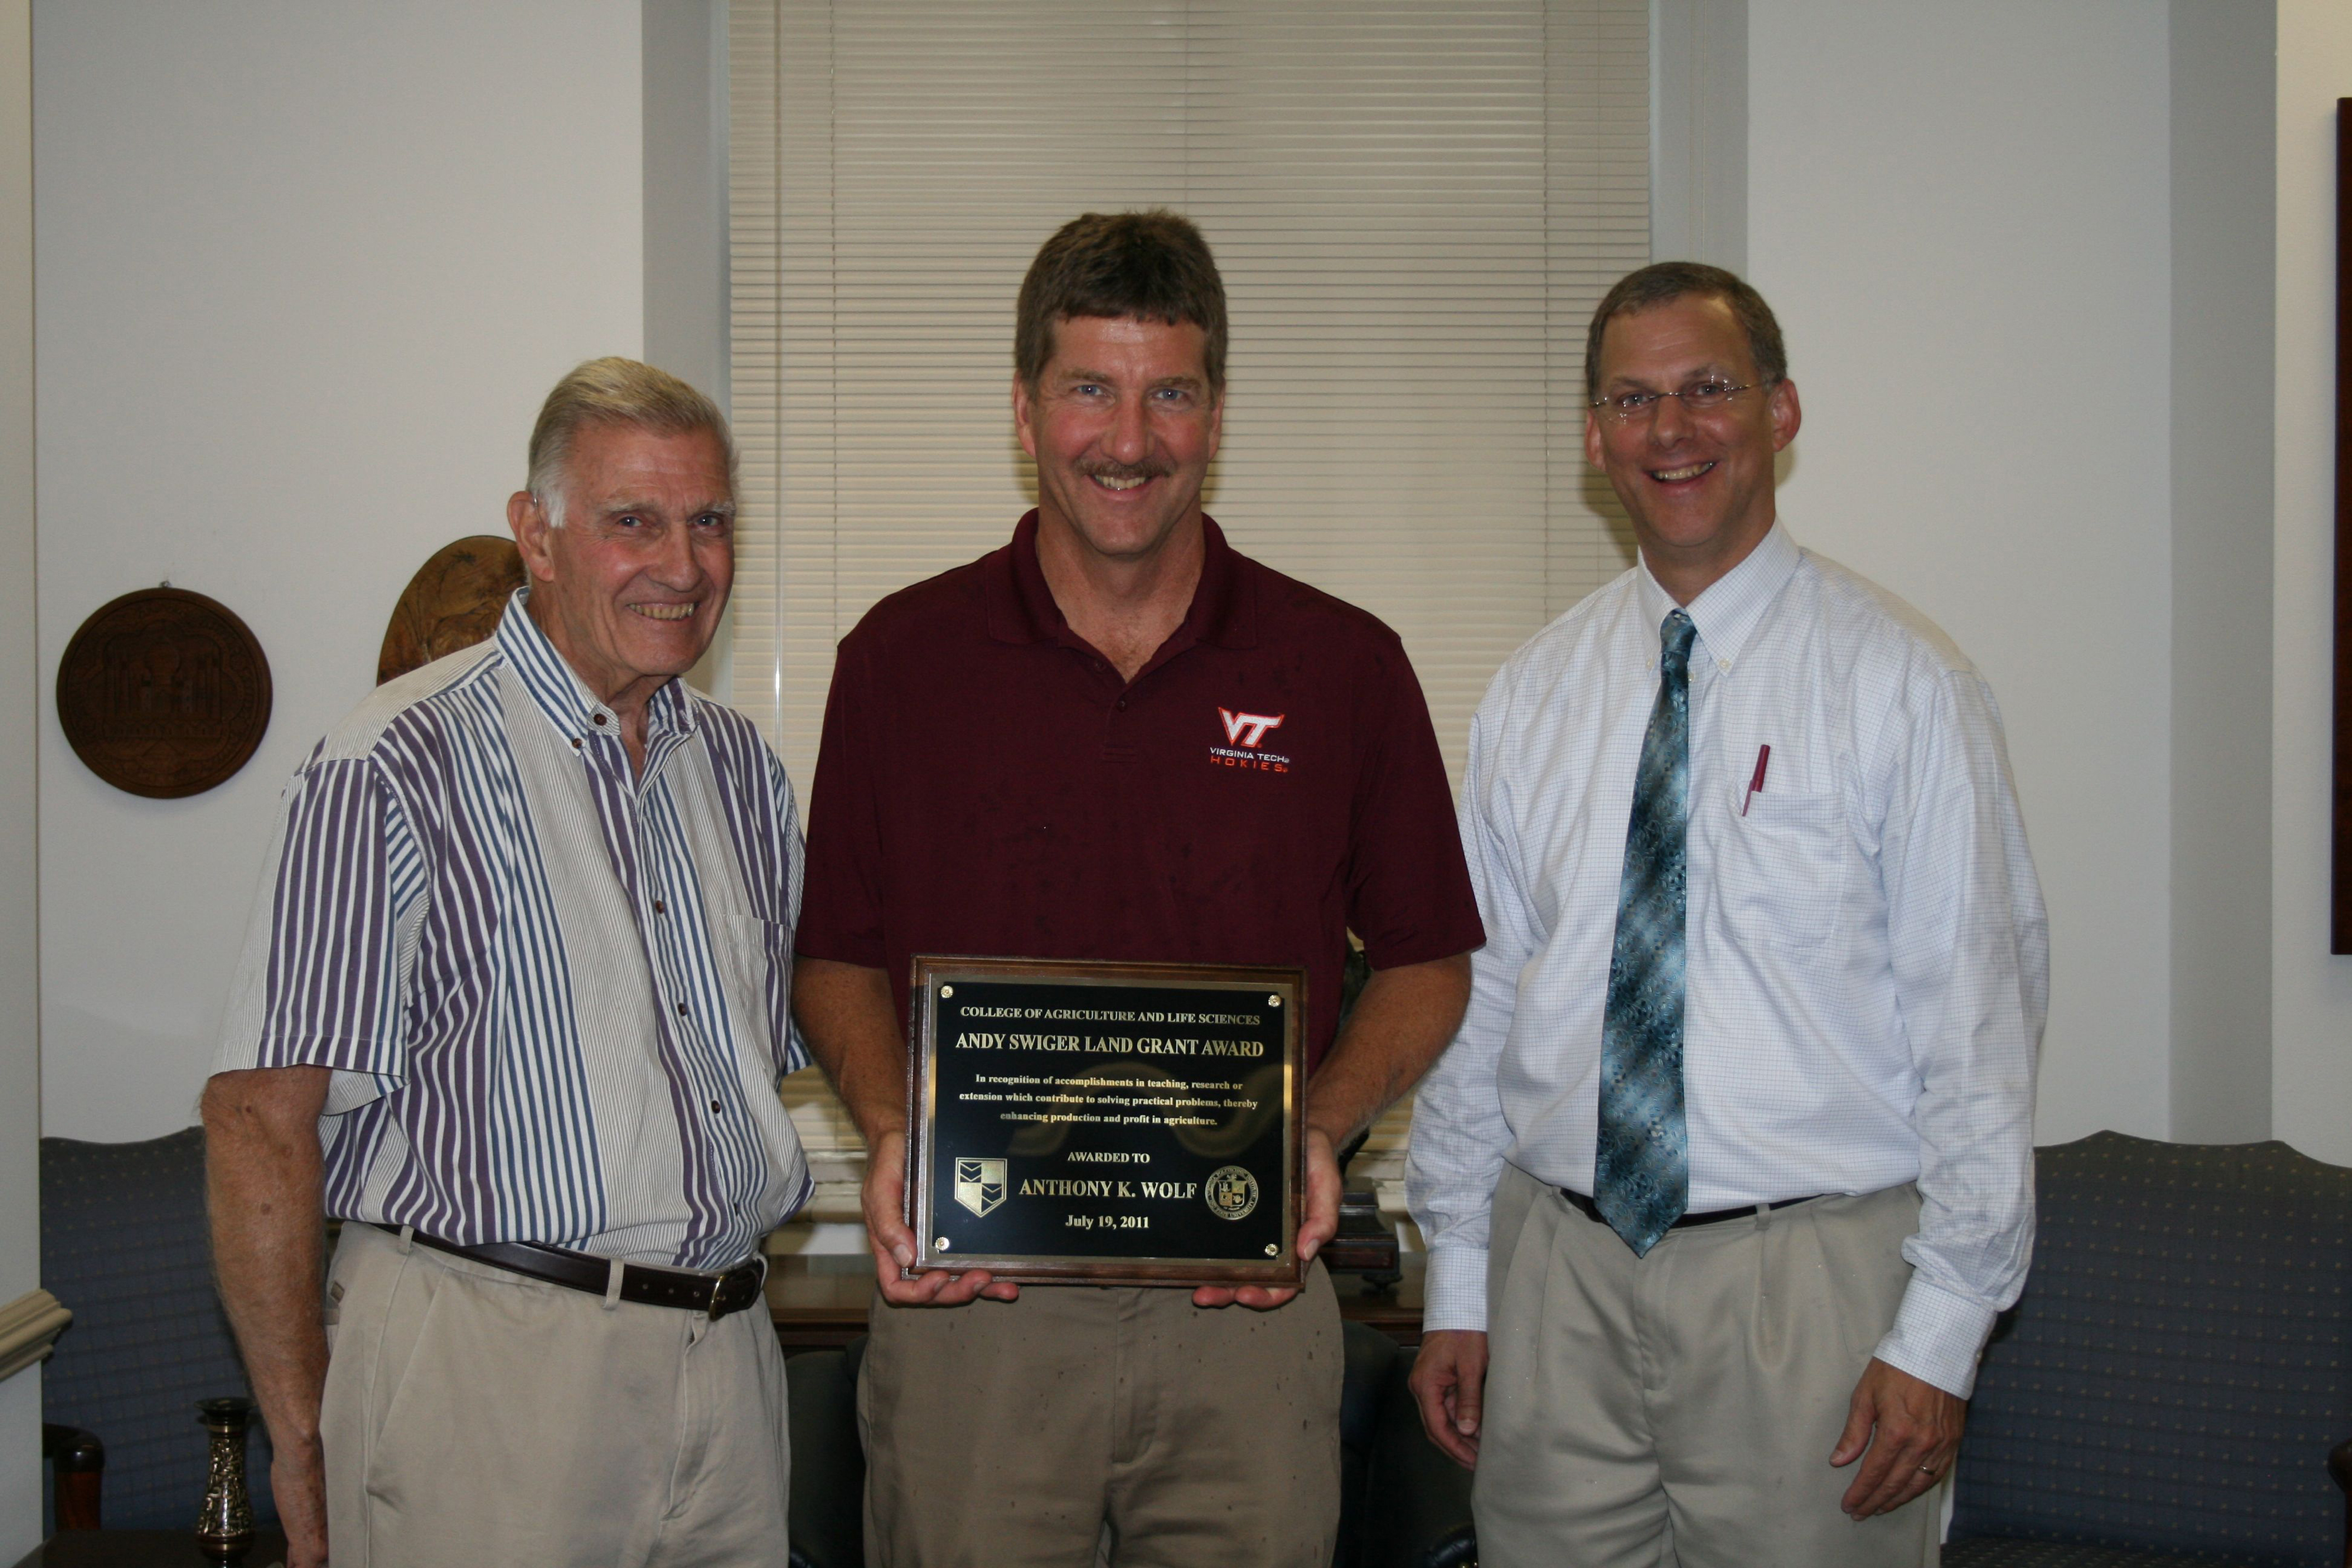 Tony Wolf (center), professor of horticulture and director of the Alson H. Smith Jr. AREC, receives the 2011 Swiger Land-Grant Award from Dean Emeritus Andy Swiger, (left) and Alan Grant, dean.